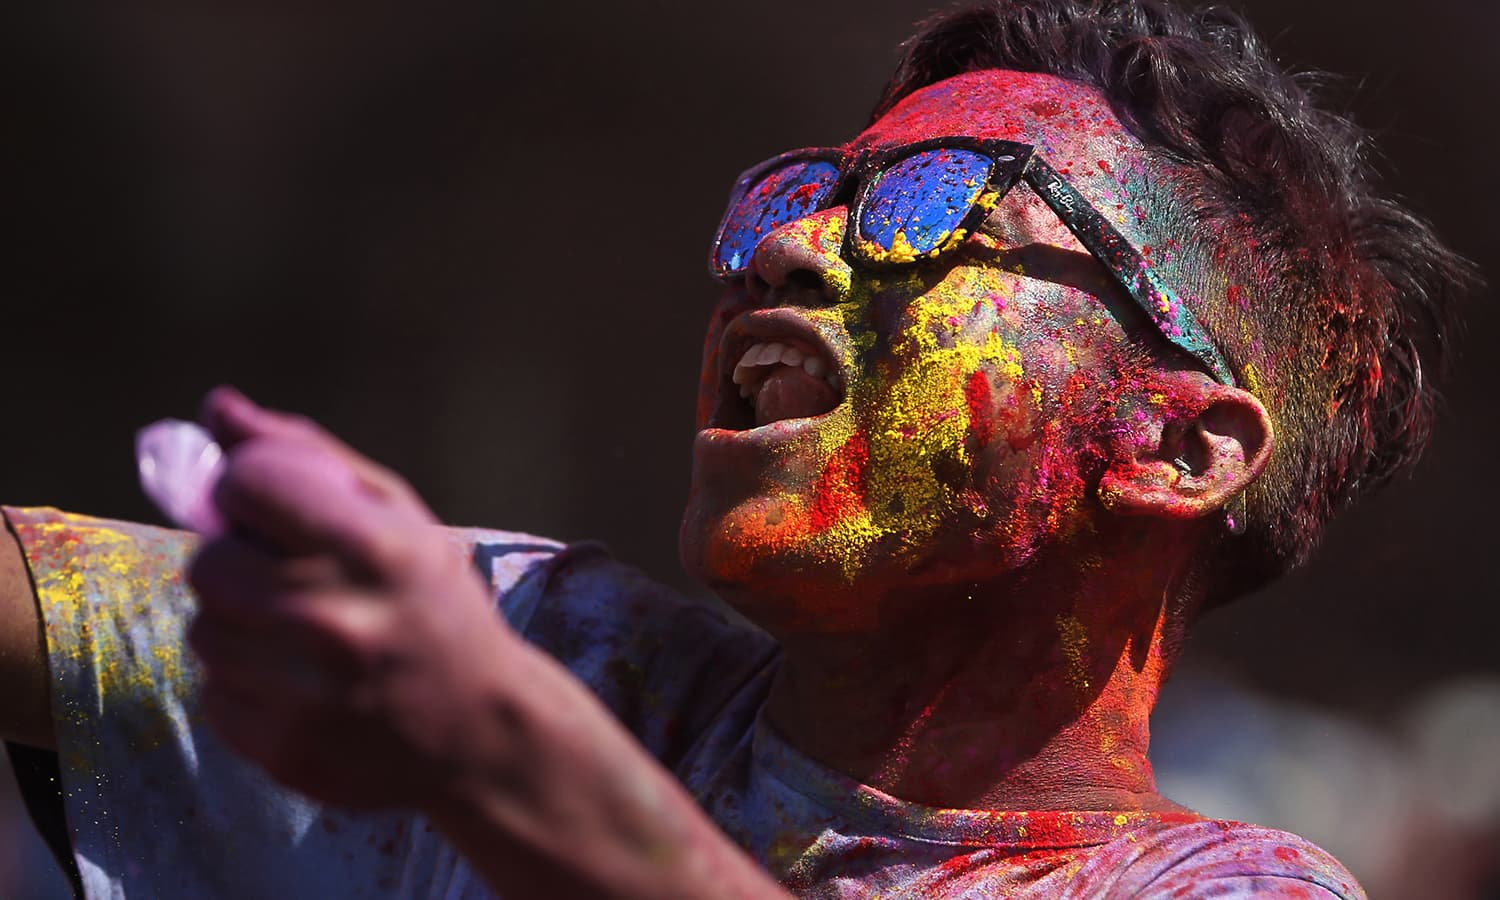 A Nepalese man with coloured powder on face dances during Holi festivities at the Basantapur Durbar Square in Kathmandu, Nepal, Sunday.— AP